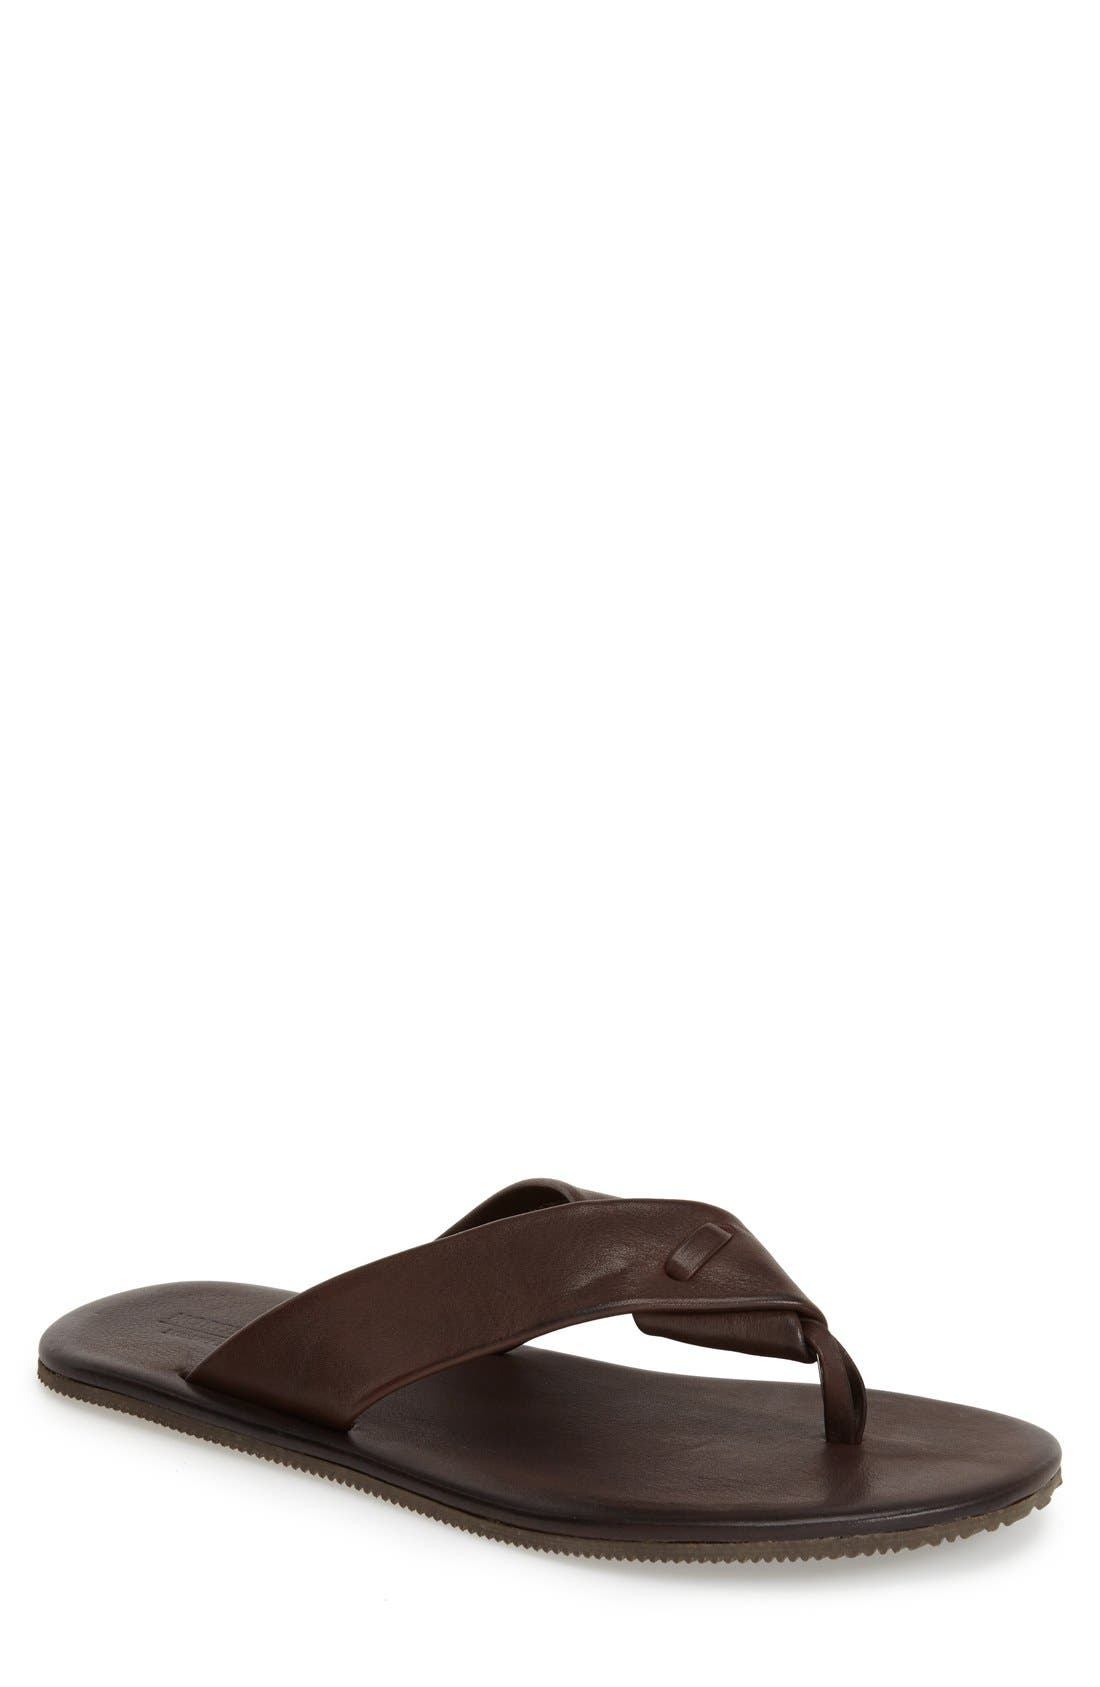 'Breeze' Flip Flop,                             Main thumbnail 1, color,                             Brown